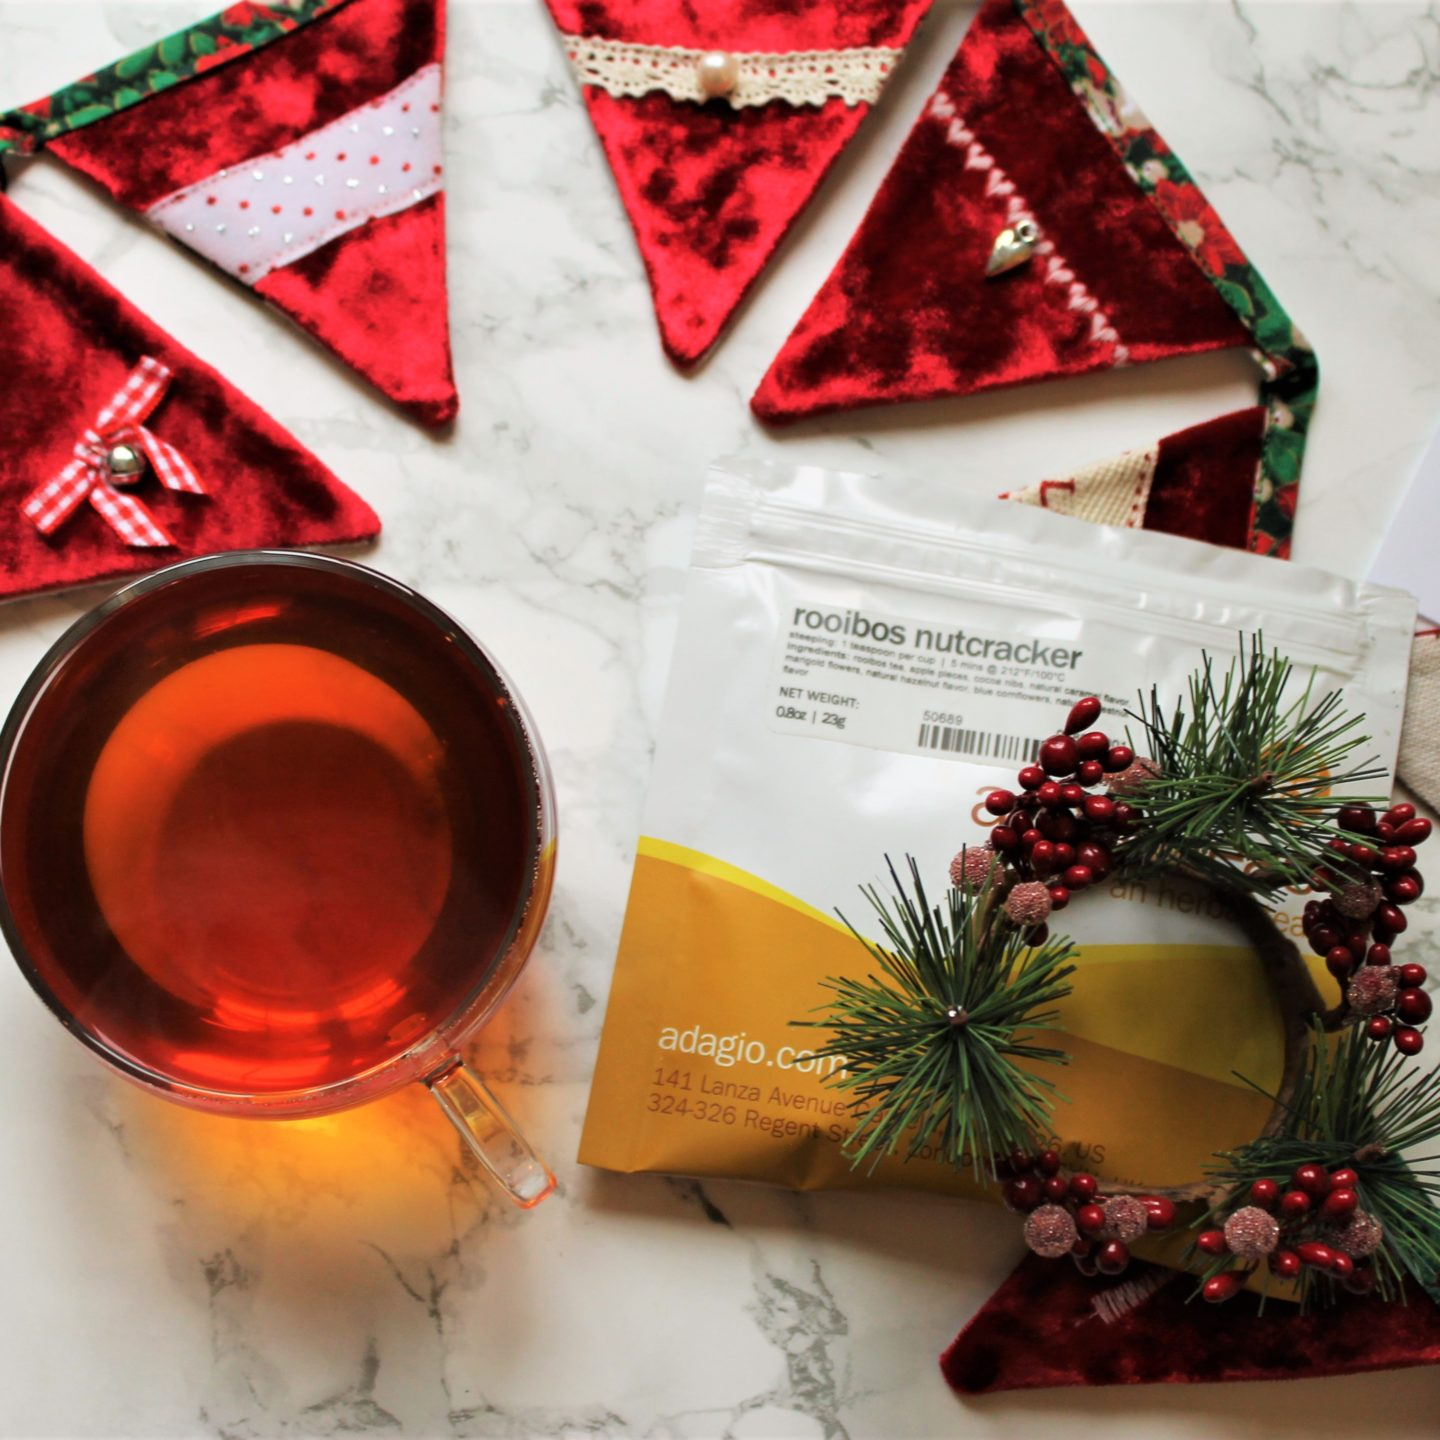 Adagio Rooibos Nutcracker Tea Review